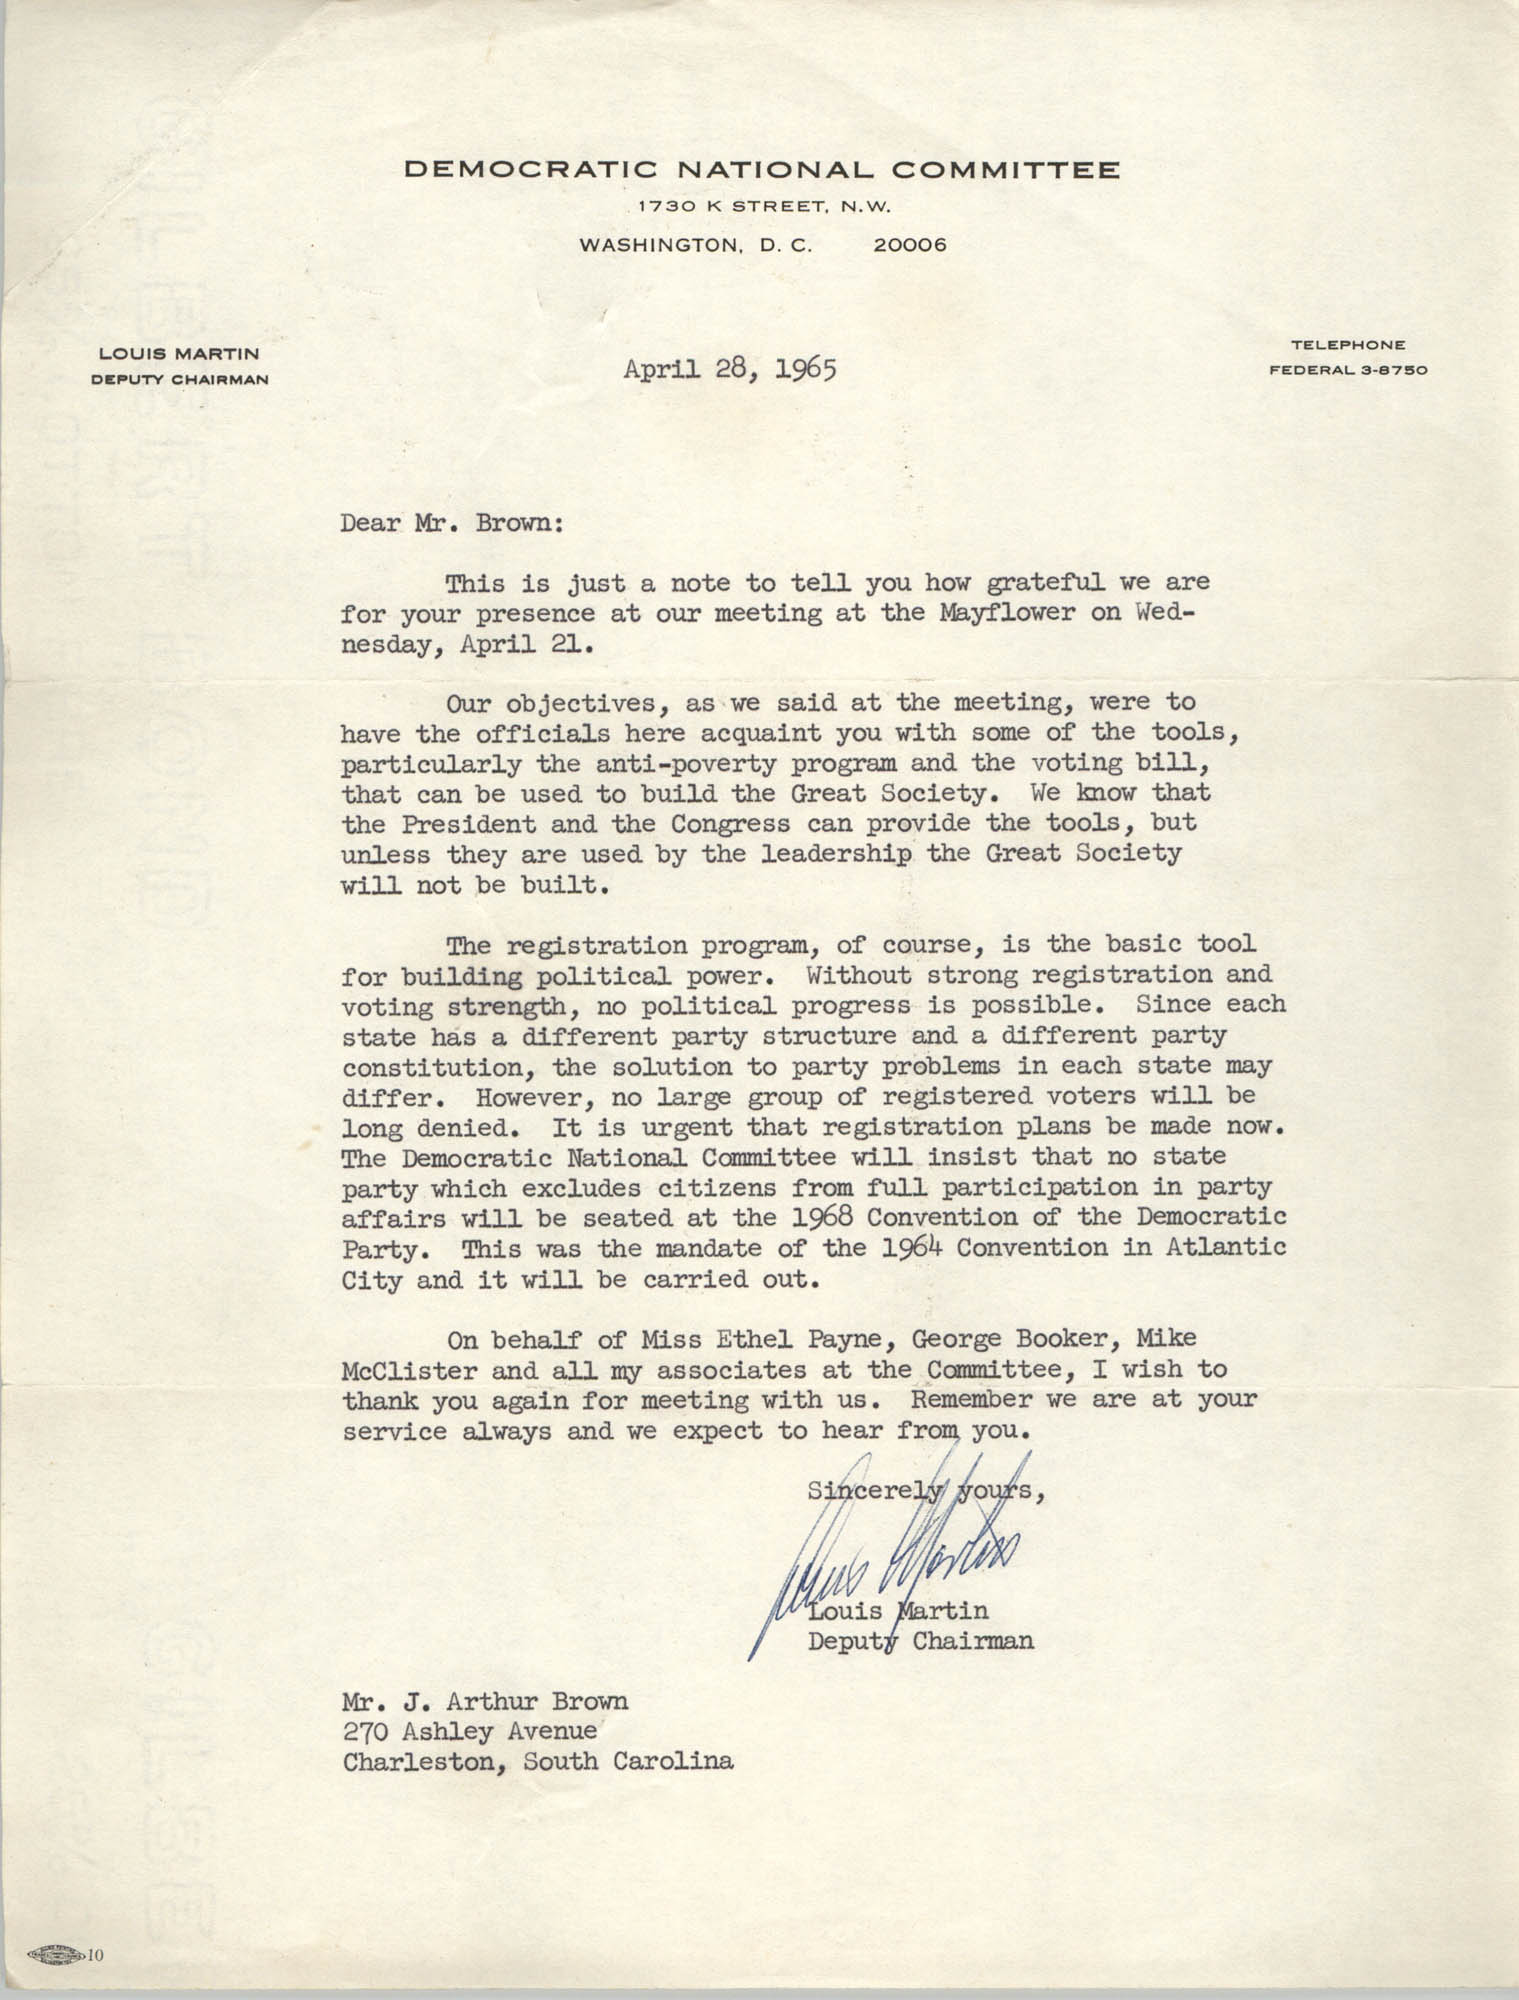 Letter from Louis Martin to J. Arthur Brown, April 28, 1965